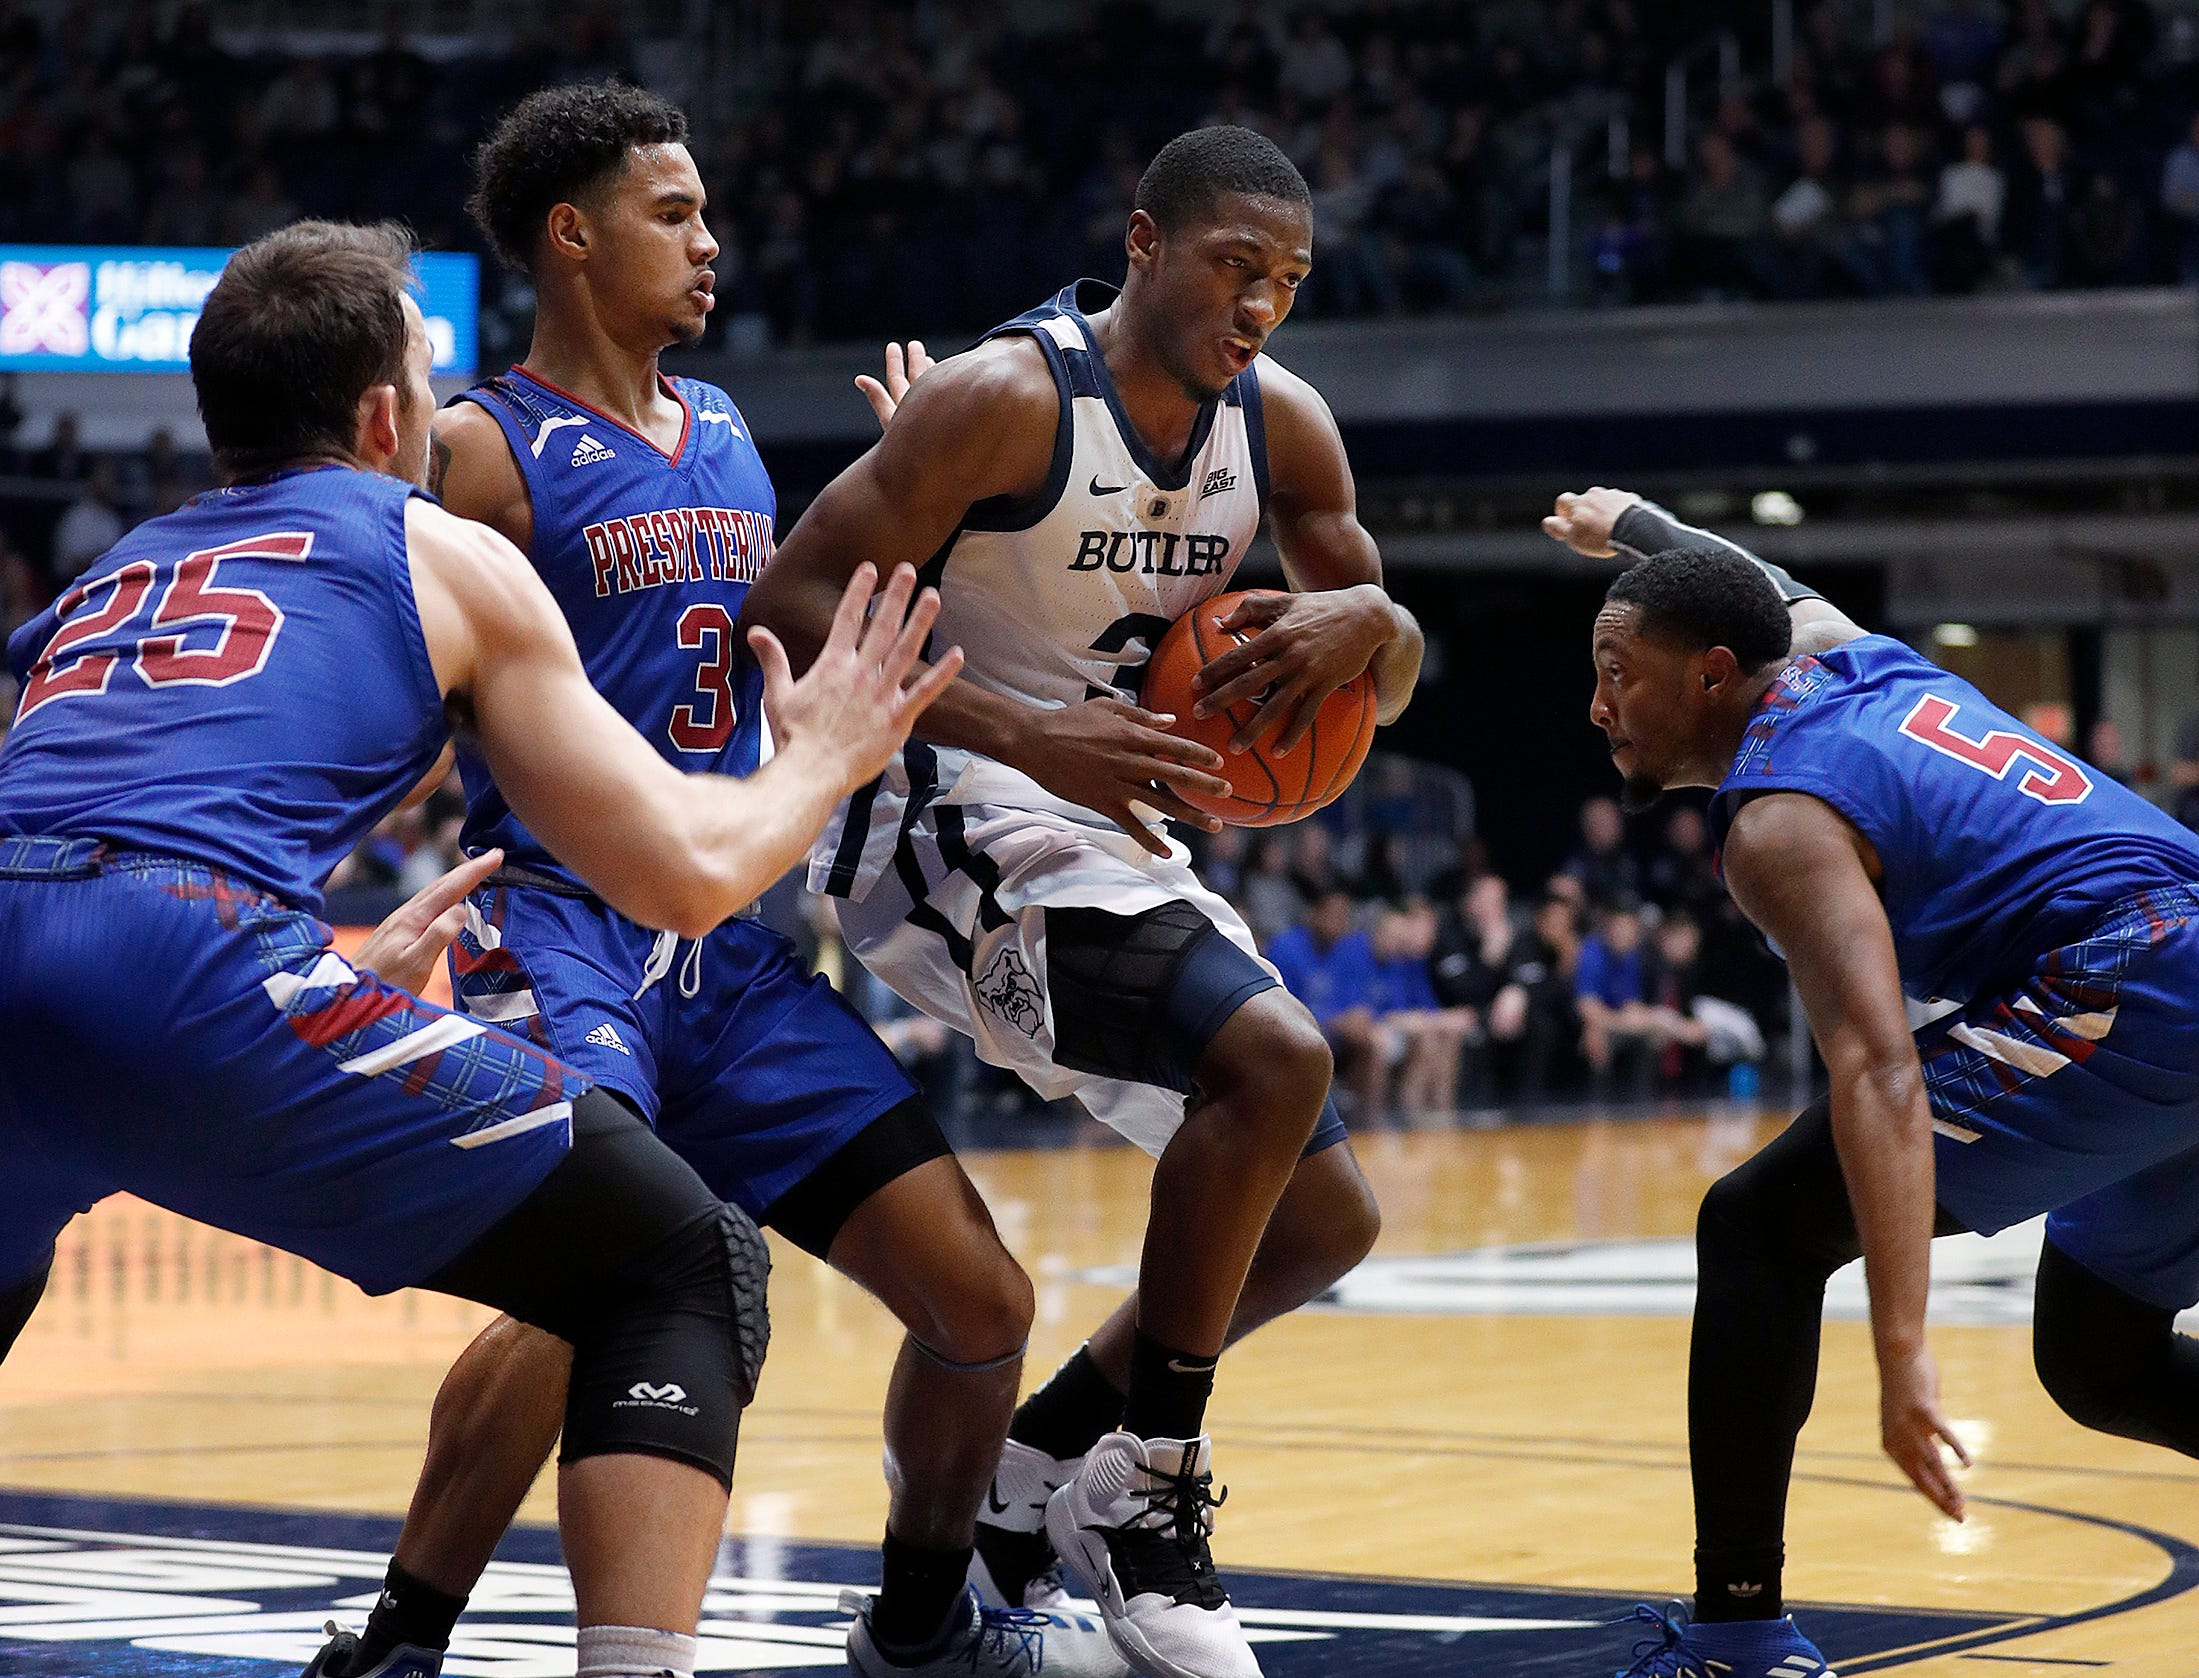 Butler Bulldogs guard Kamar Baldwin (3) is defended by Presbyterian Blue Hose guard Romeo Crouch (3) and Davon Bell (5) in the second half of their game at Hinkle Fieldhouse on Monday, Dec. 18, 2018.